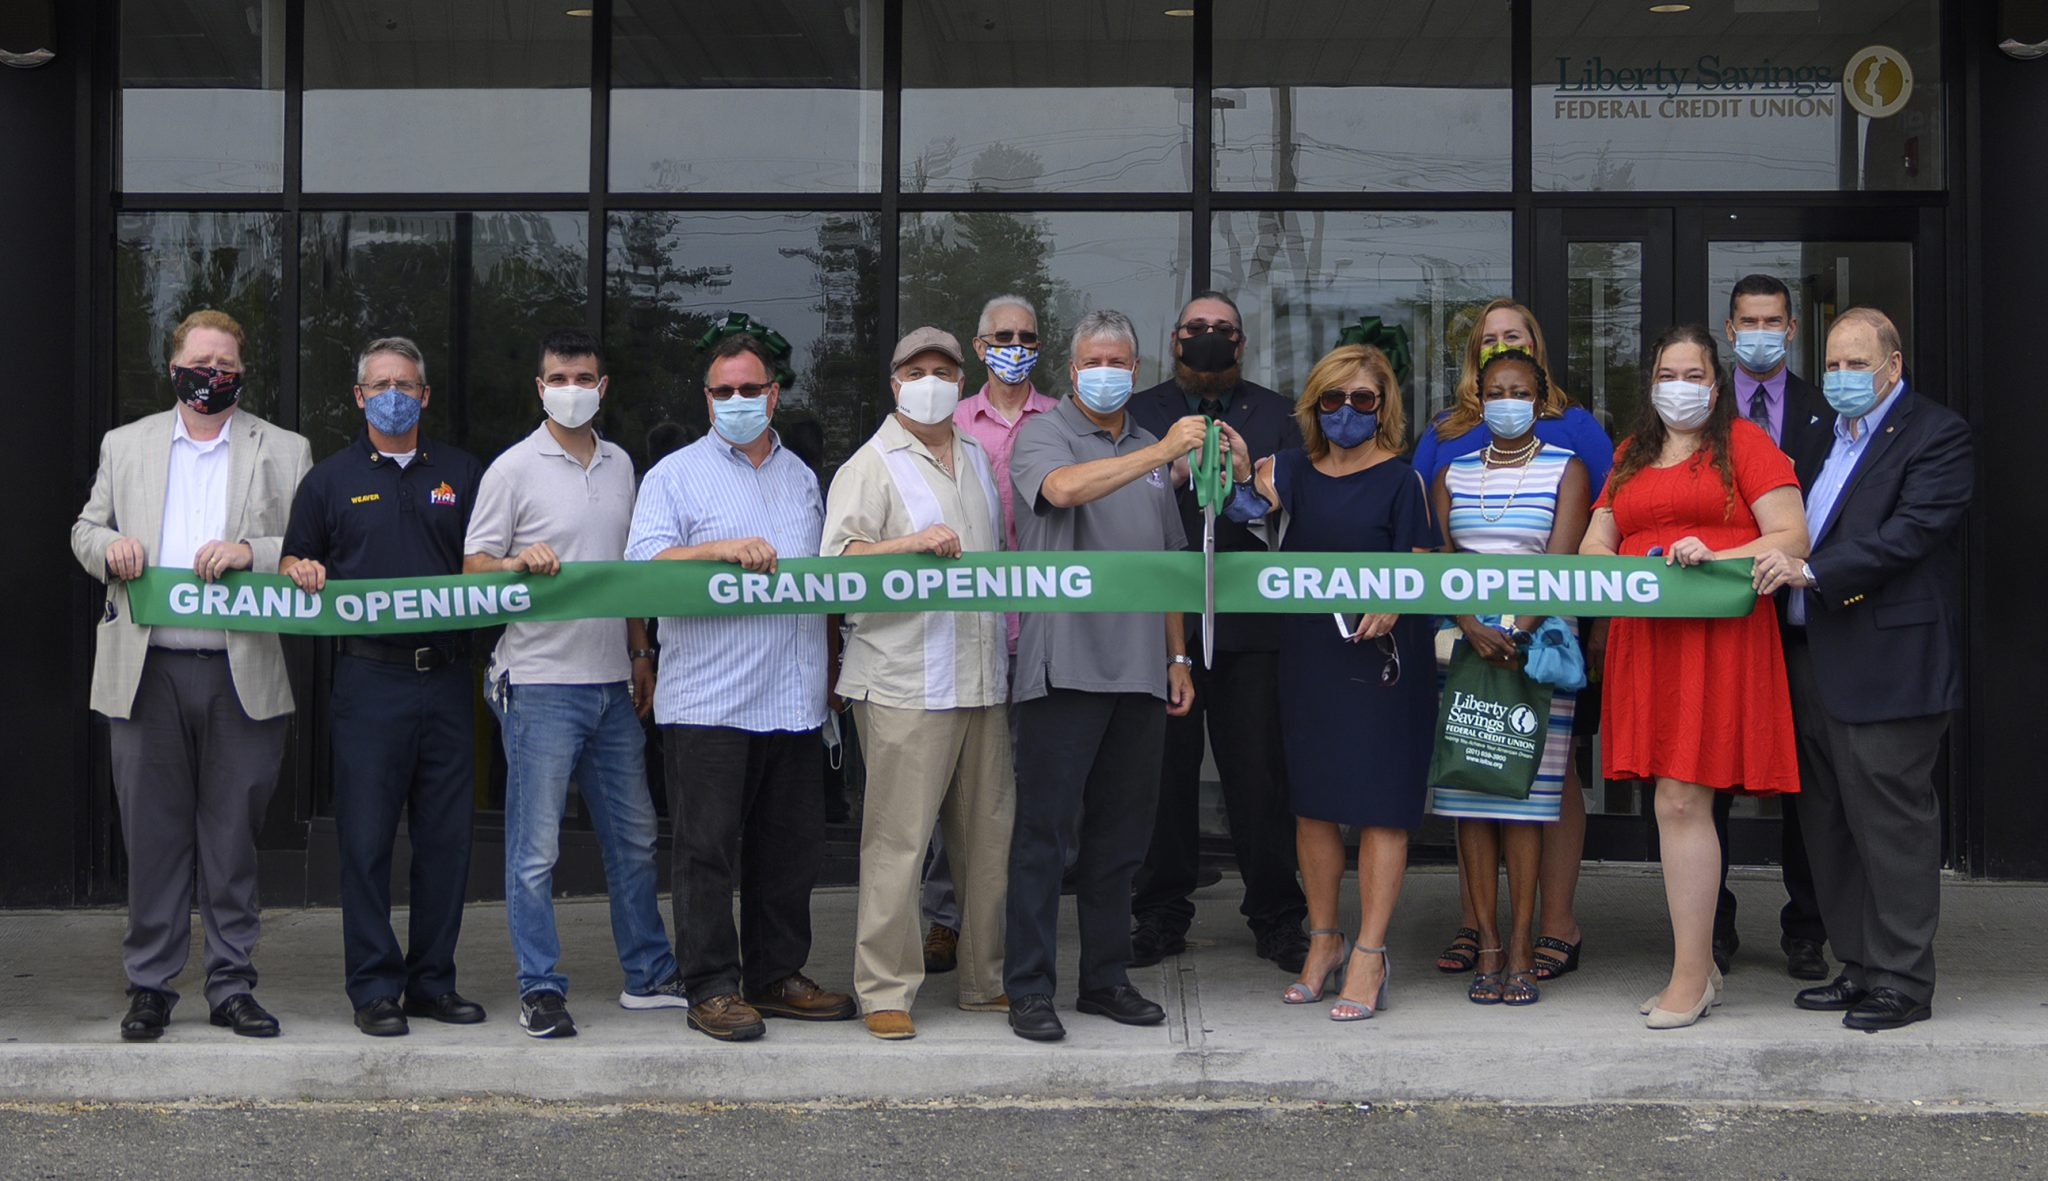 Liberty Savings Celebrates Grand Opening of New Branch in Bayonne ...